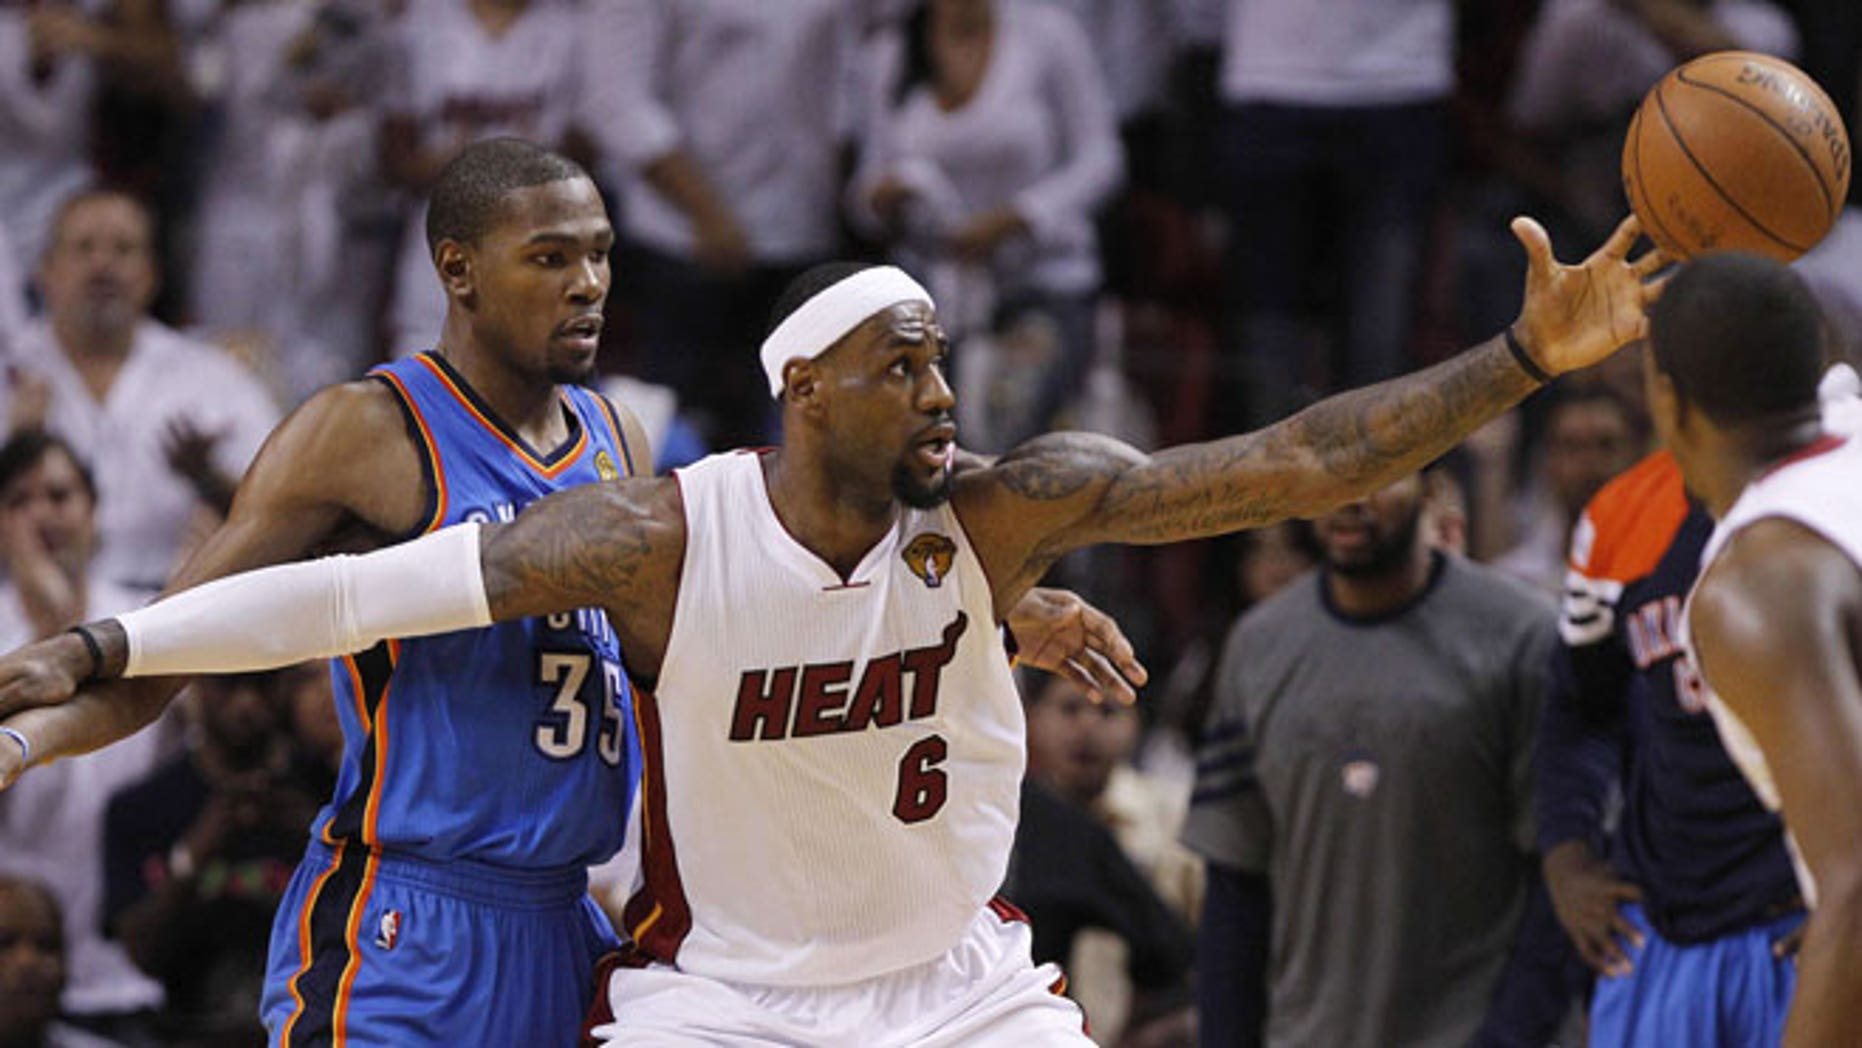 June 19, 2012: Miami Heat small forward LeBron James (6) reels in the ball as Oklahoma City Thunder small forward Kevin Durant (35) defends during the second half at Game 4 of the NBA Finals basketball series in Miami.